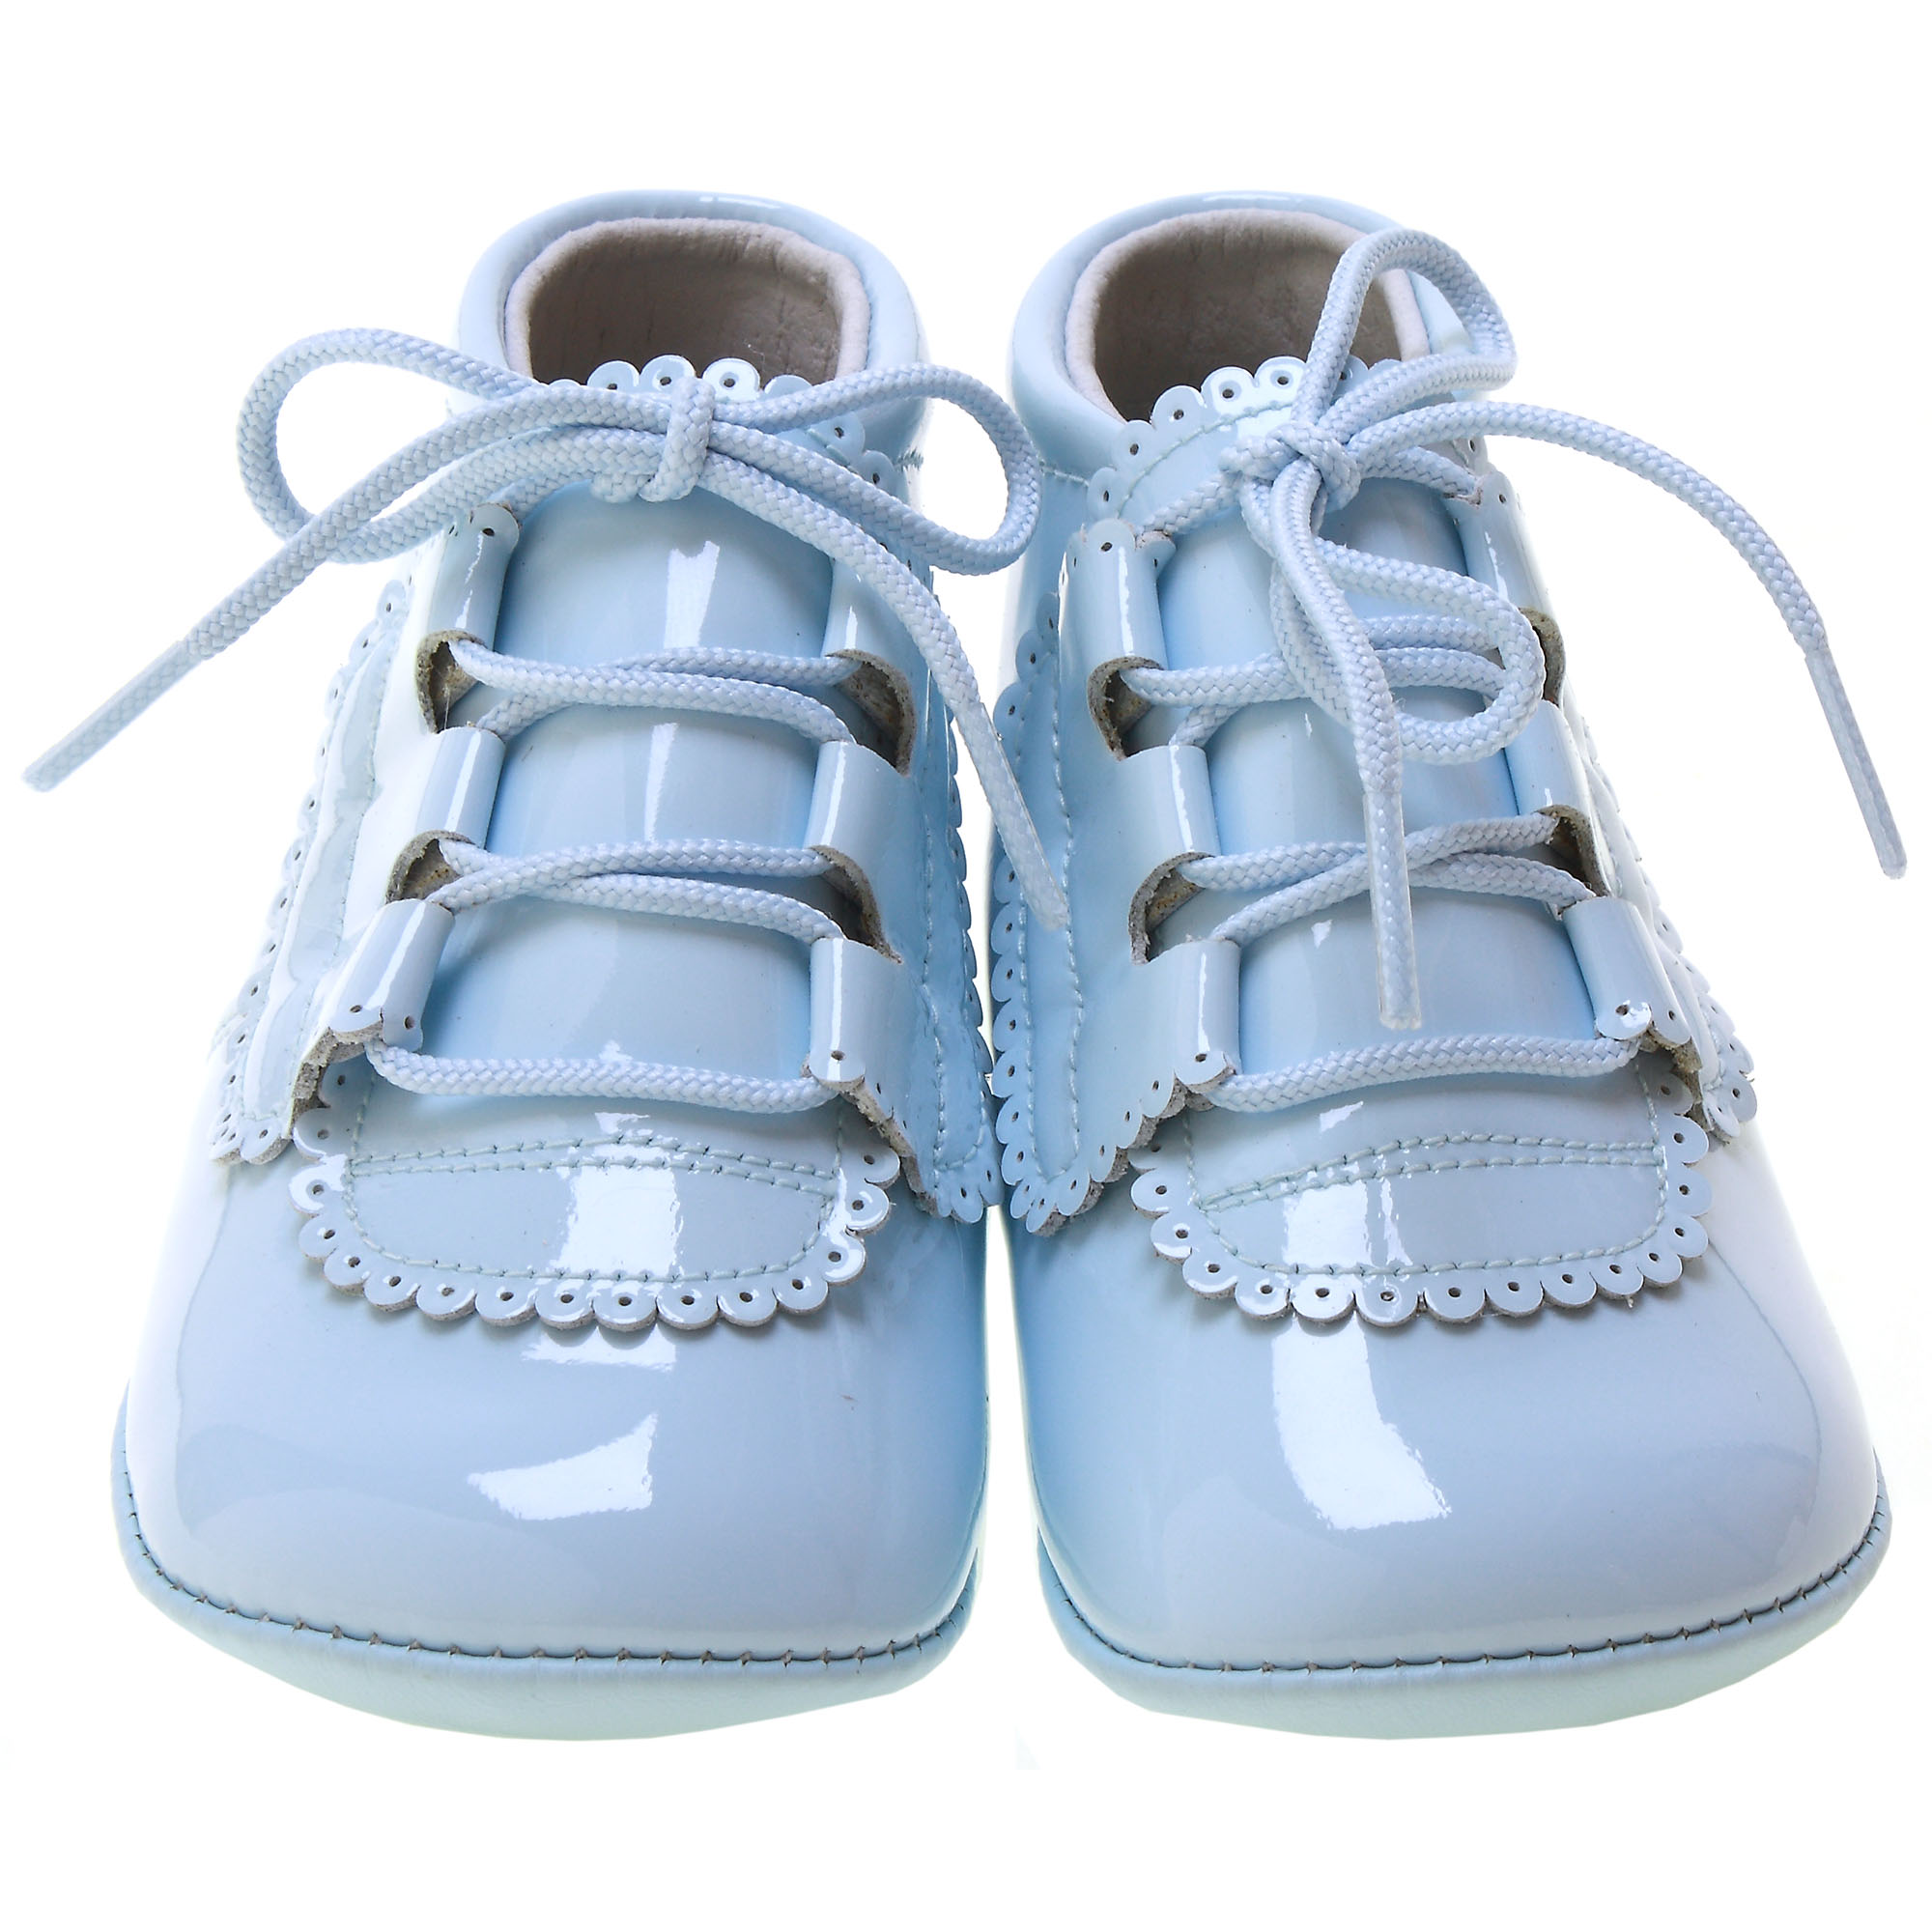 Baby Boy Blue Patent Pram Shoes In Leather With Scallop ...